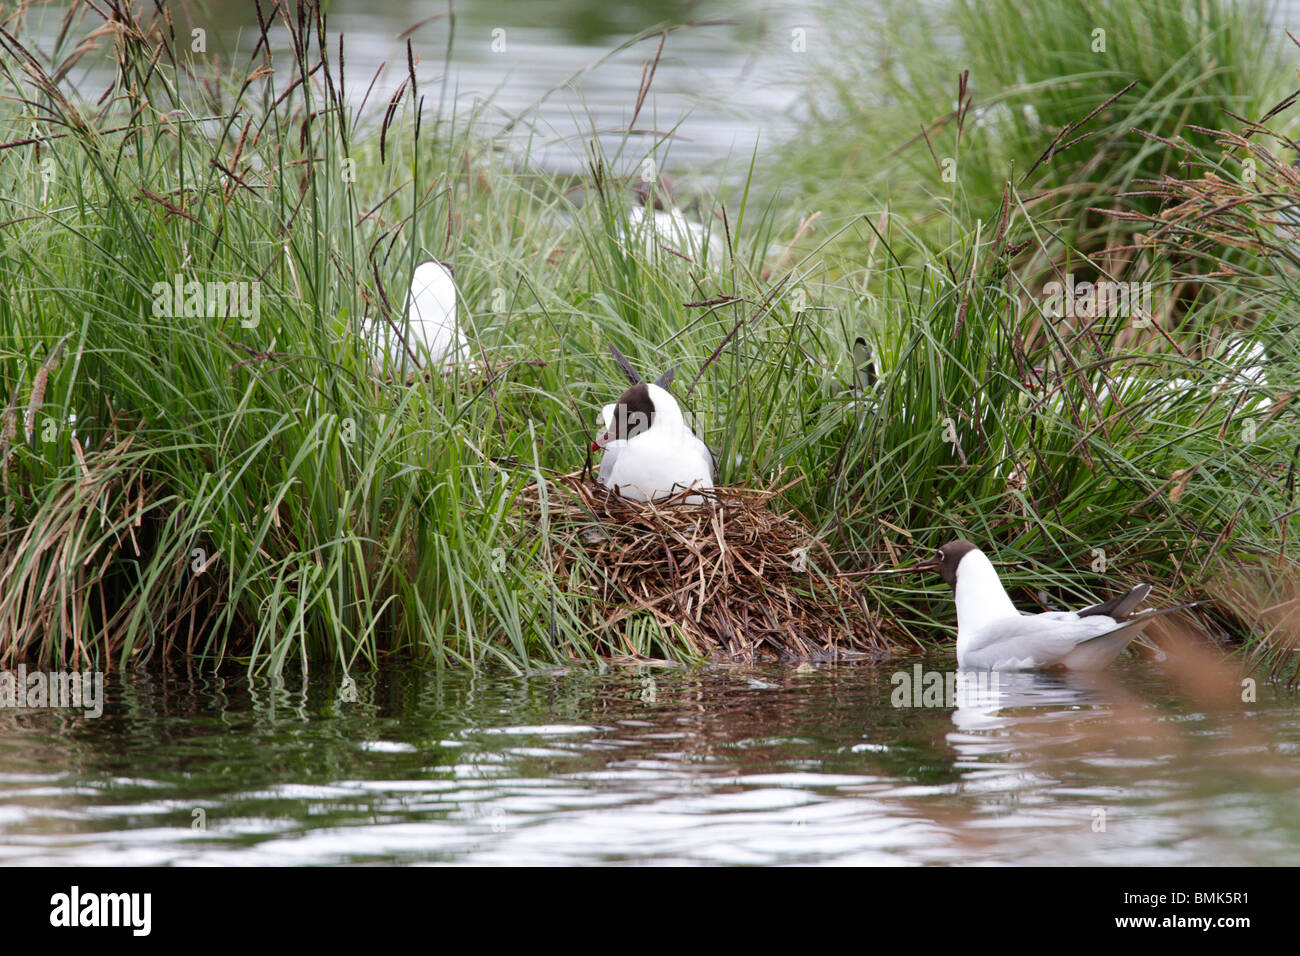 Black-Headed gull at the Grosse Russweiher, Bavaria. This is a breeding colony of gulls. - Stock Image